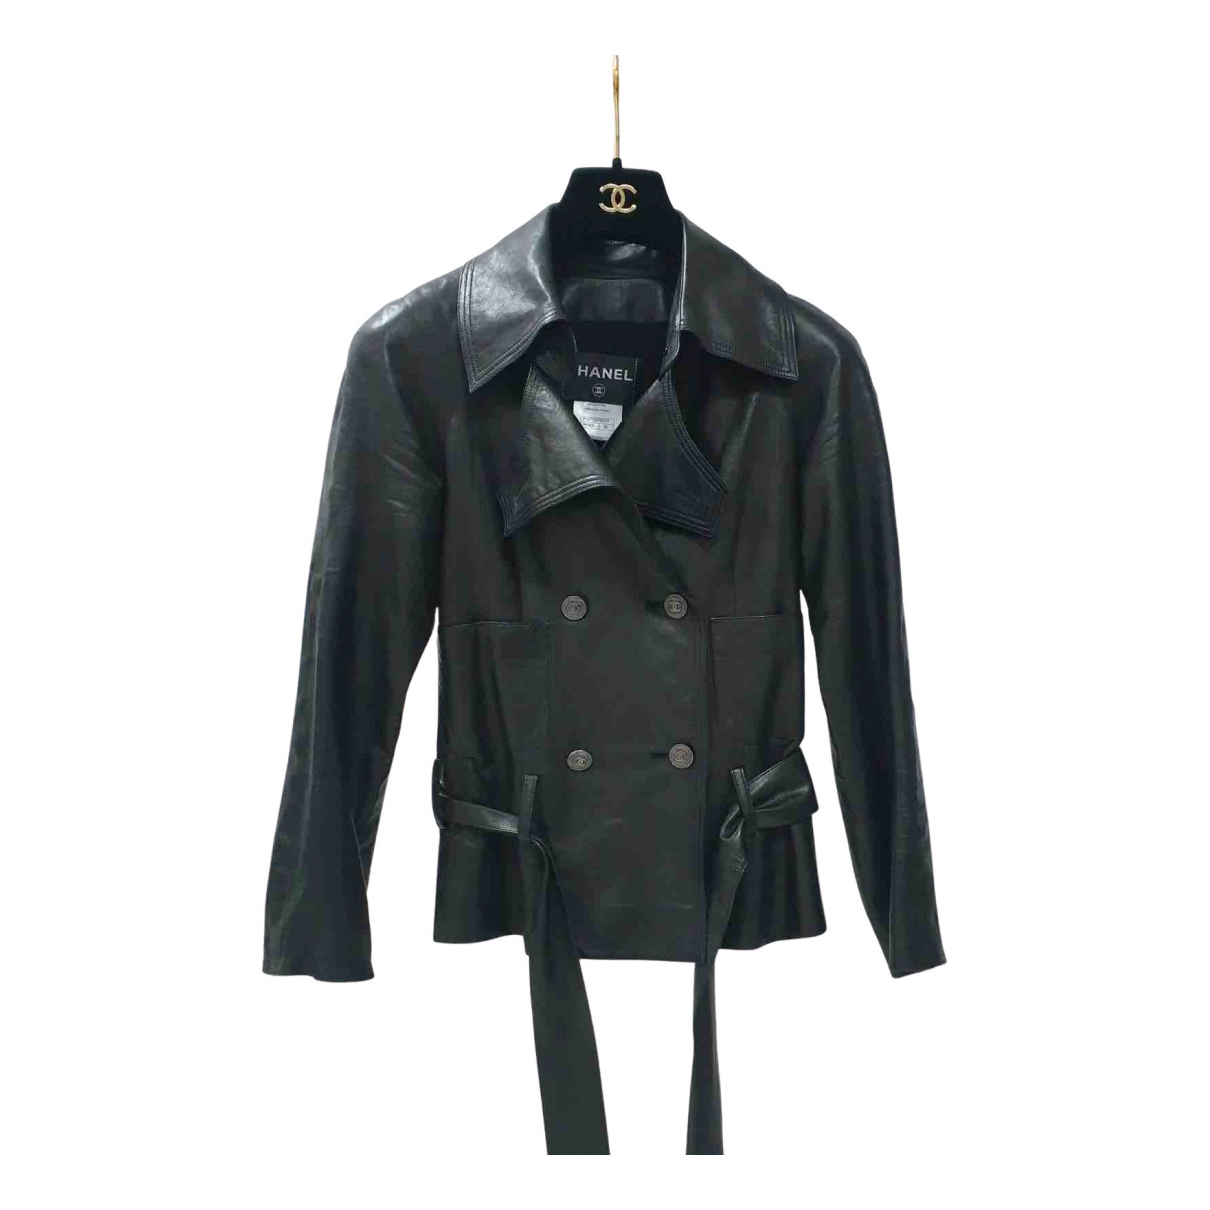 Chanel N Black Leather Leather jacket for Women 36 FR